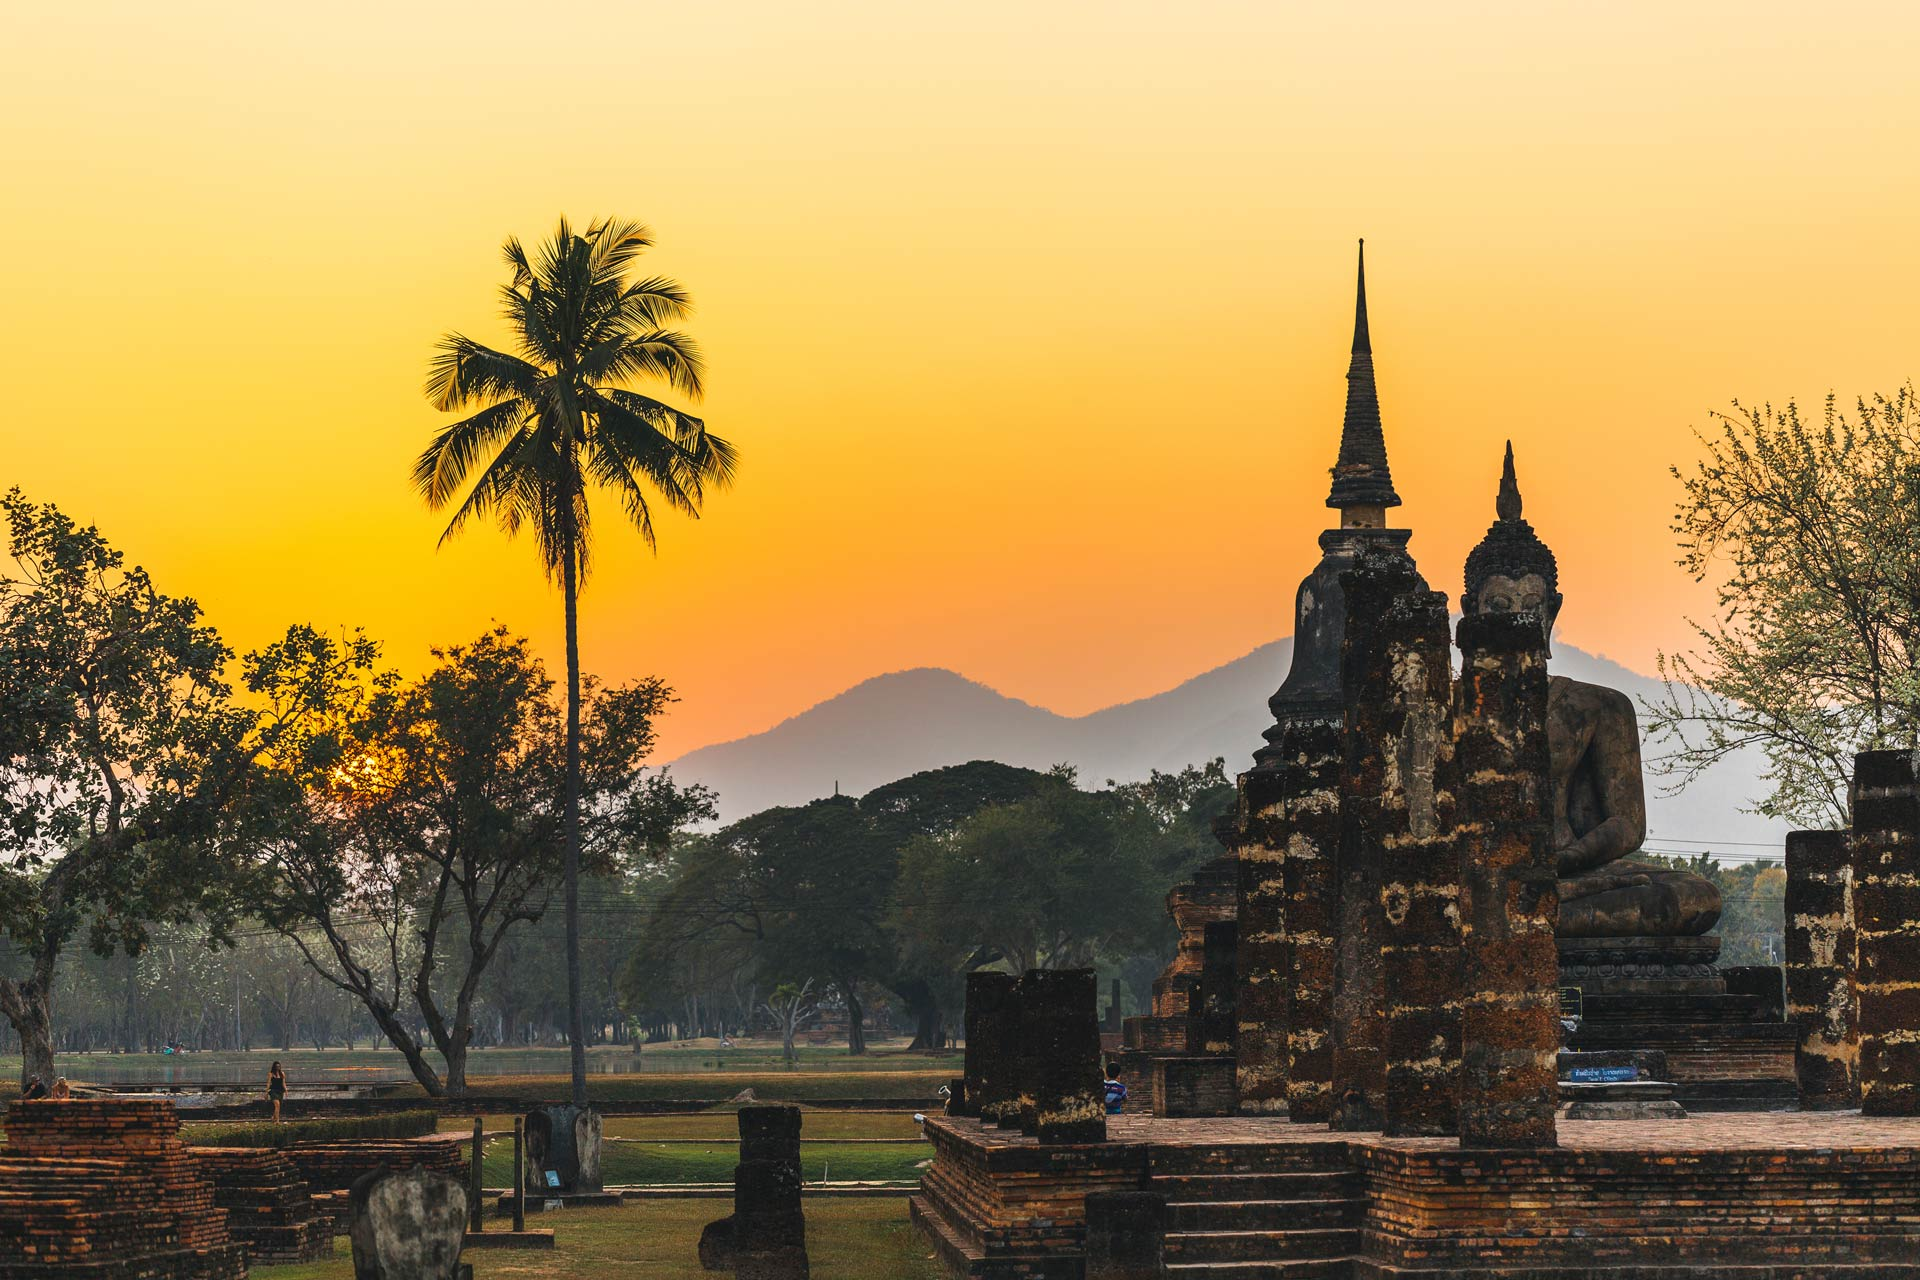 temple-in-sukhothai-during-sunset-thailand